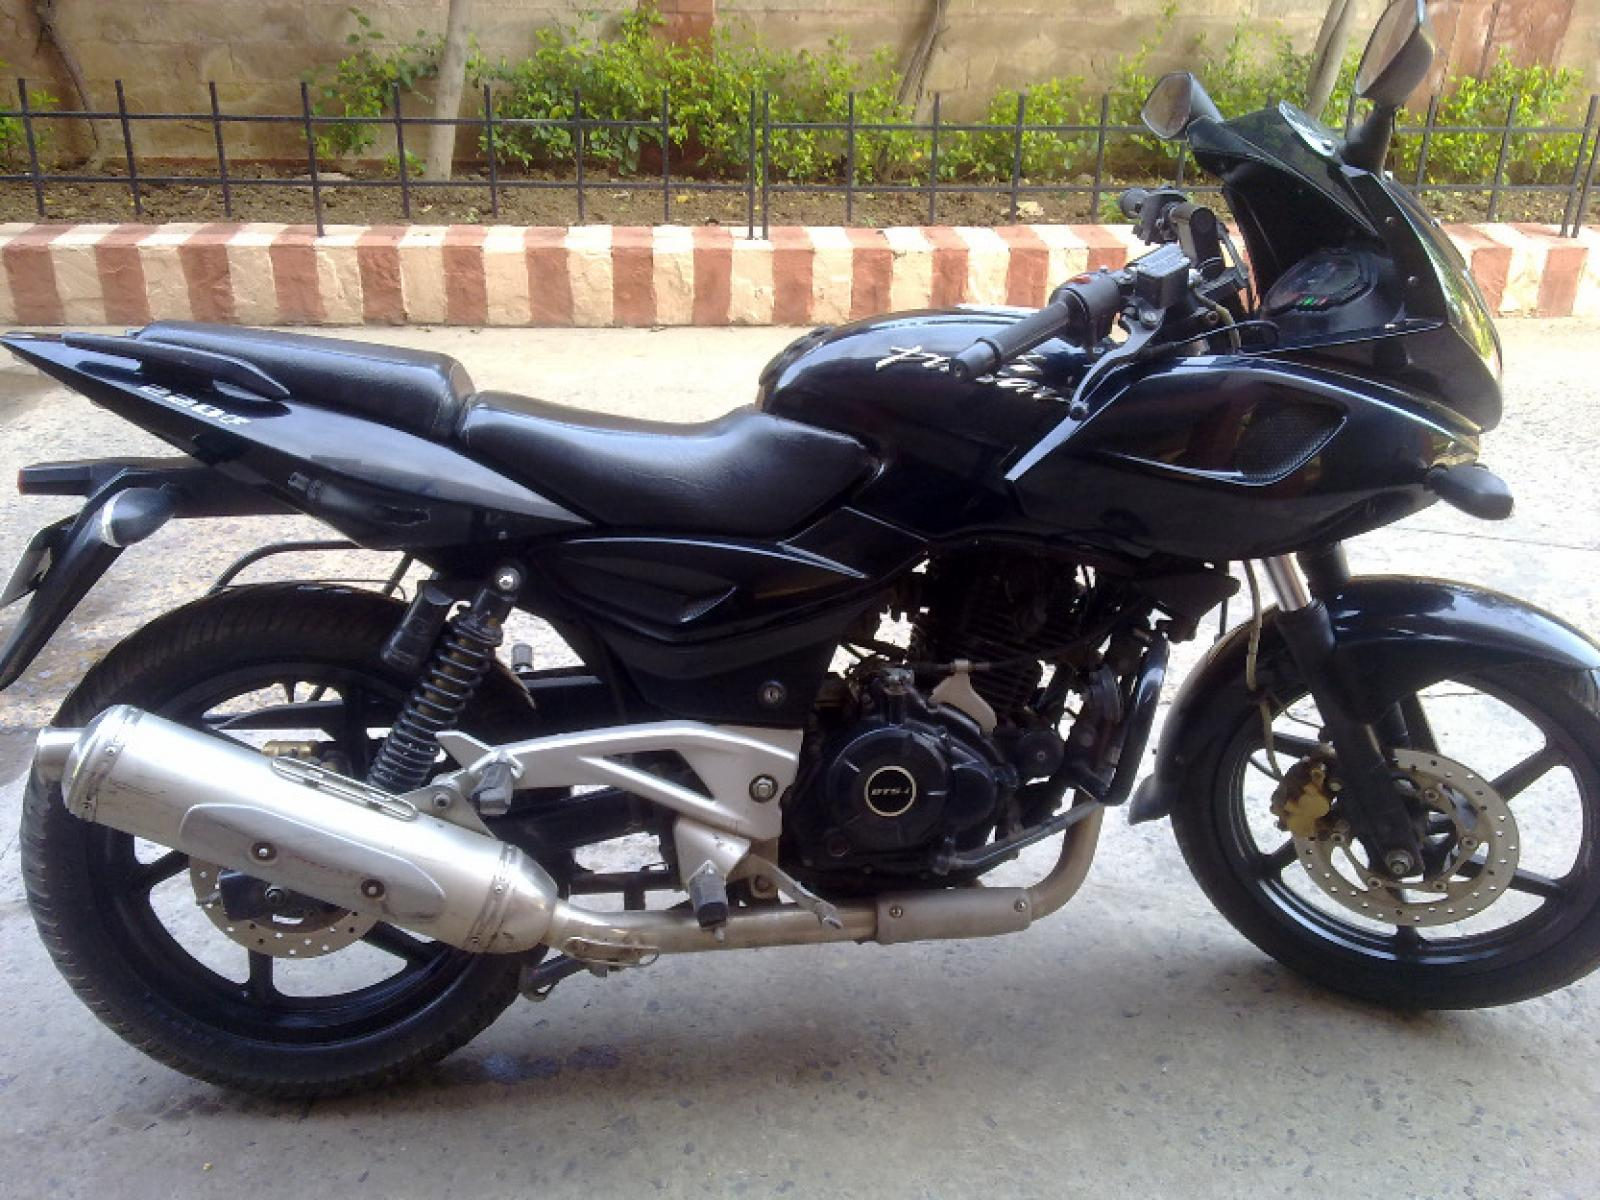 Pulsar 220 Bike Full Hd Wallpaper Labzada Wallpaper